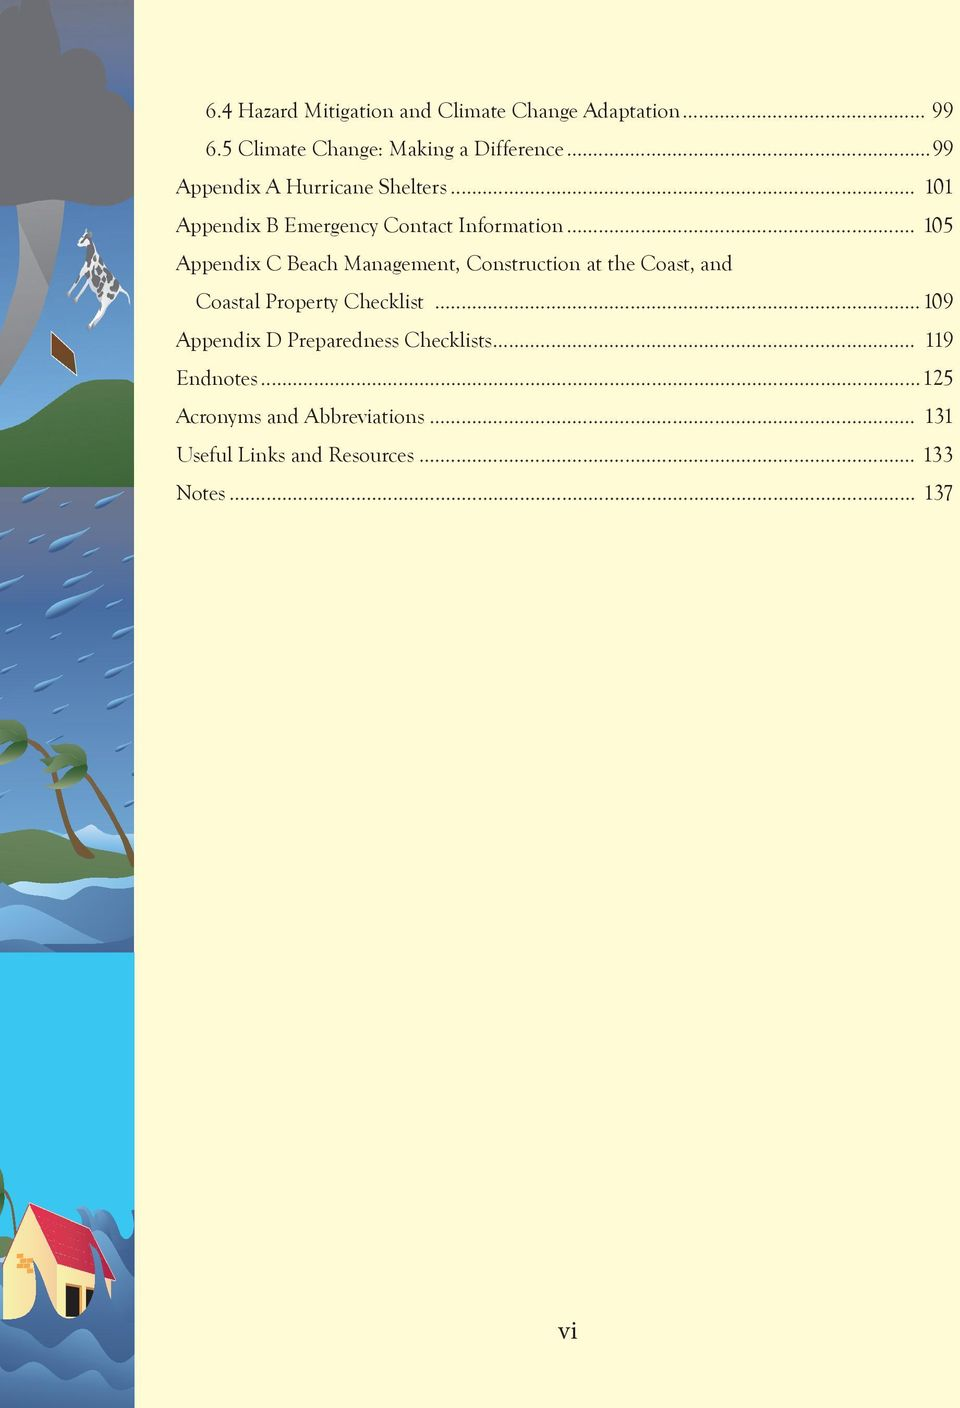 .. 105 Appendix C Beach Management, Construction at the Coast, and Coastal Property Checklist.